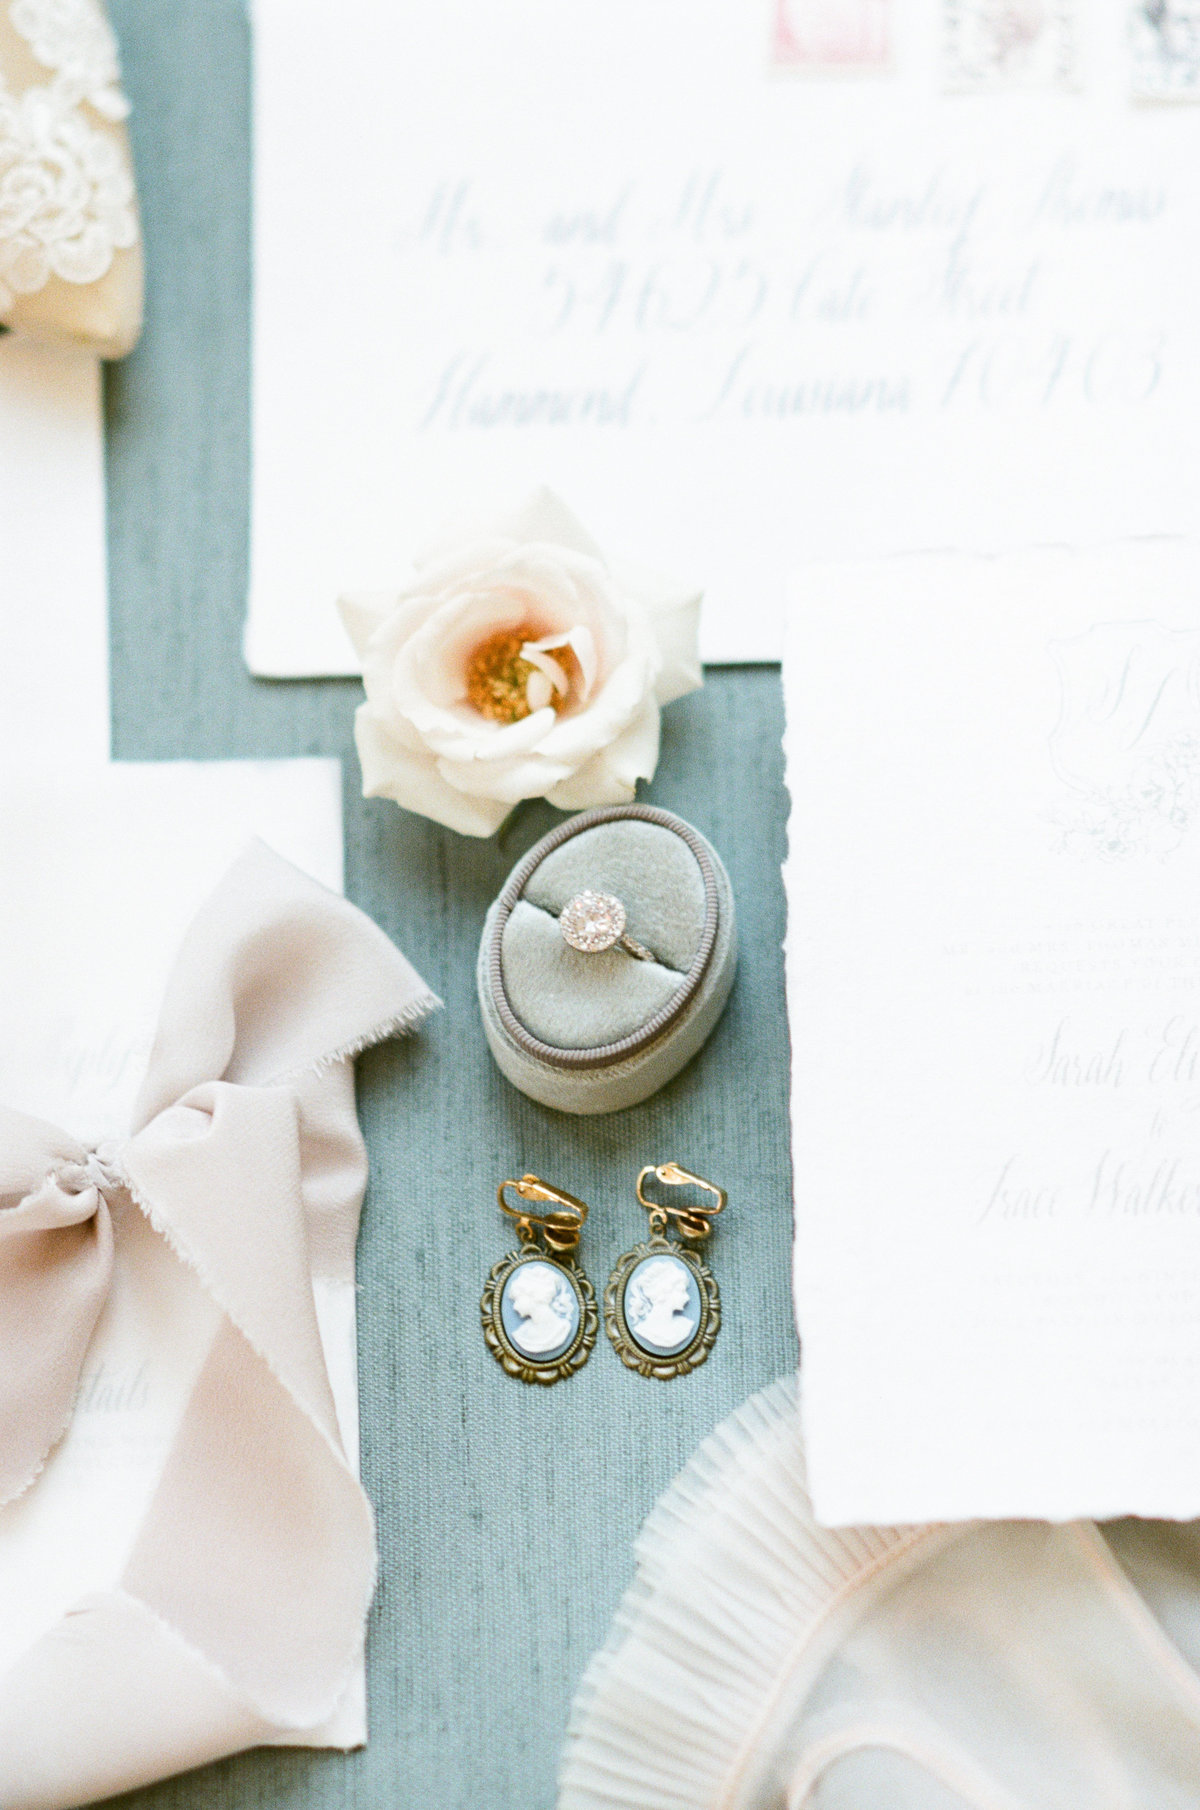 Flatlay of wedding stationery, earrings, and wedding details